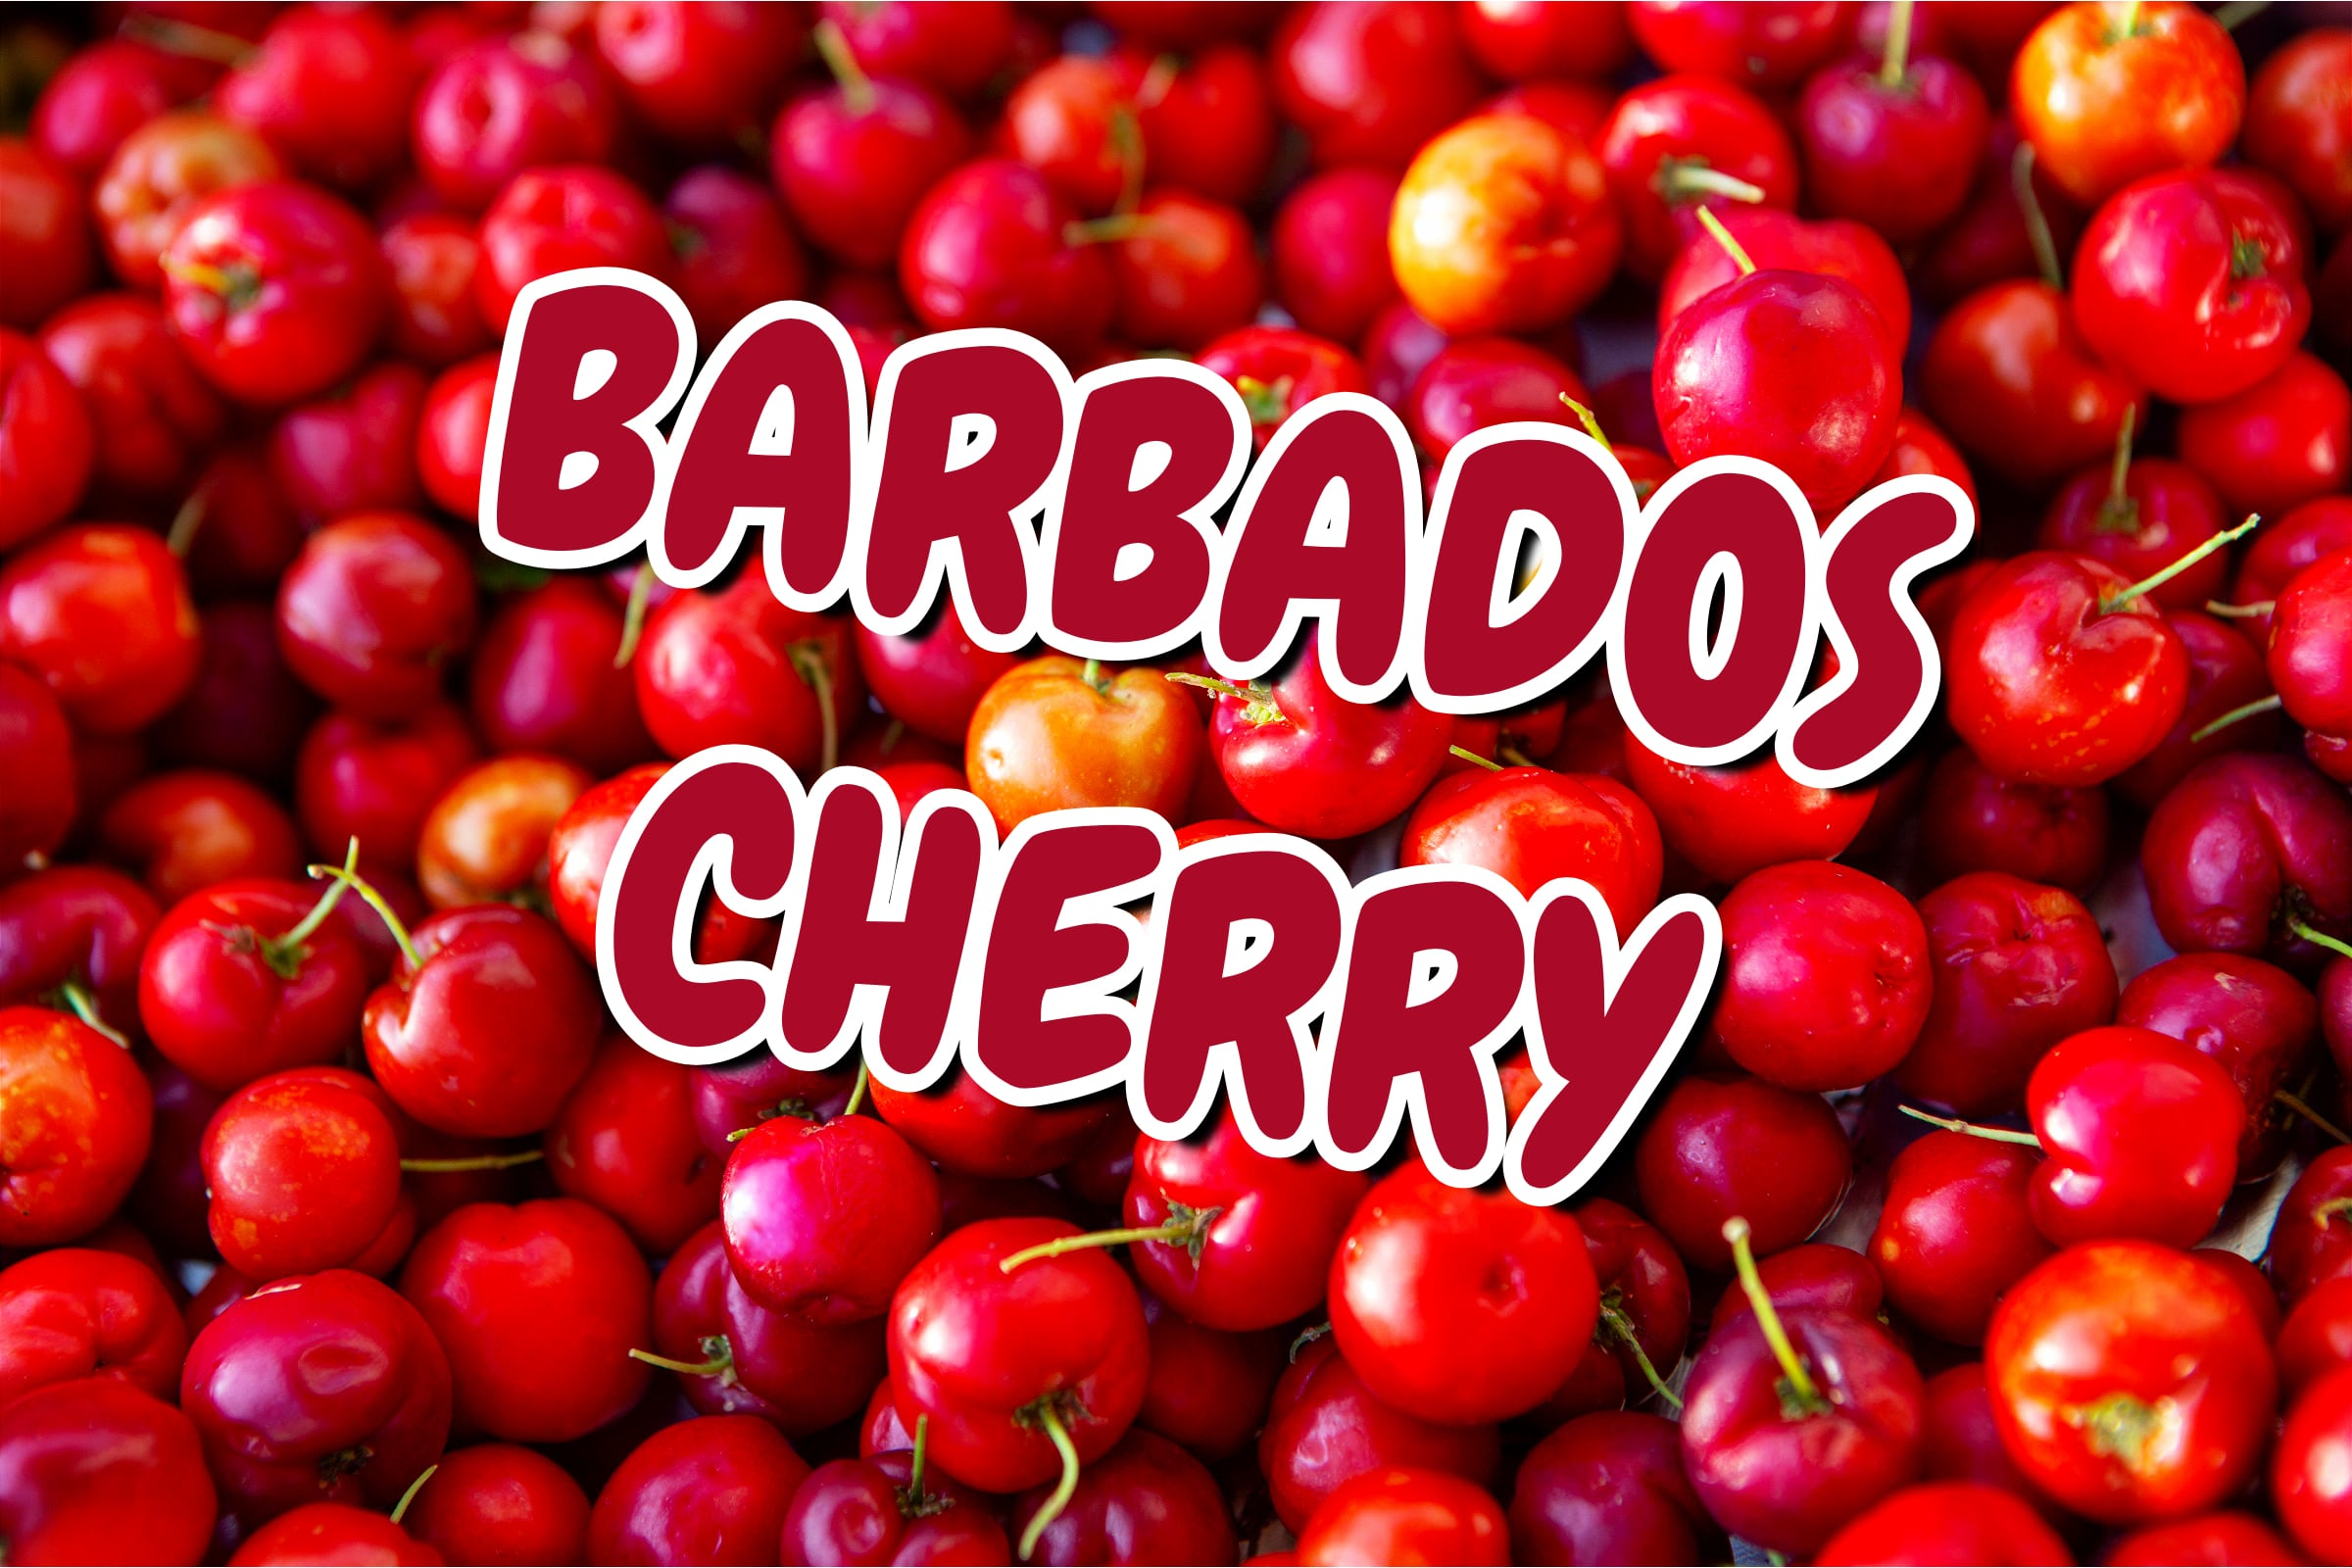 What Is The Barbados Cherry Plant?